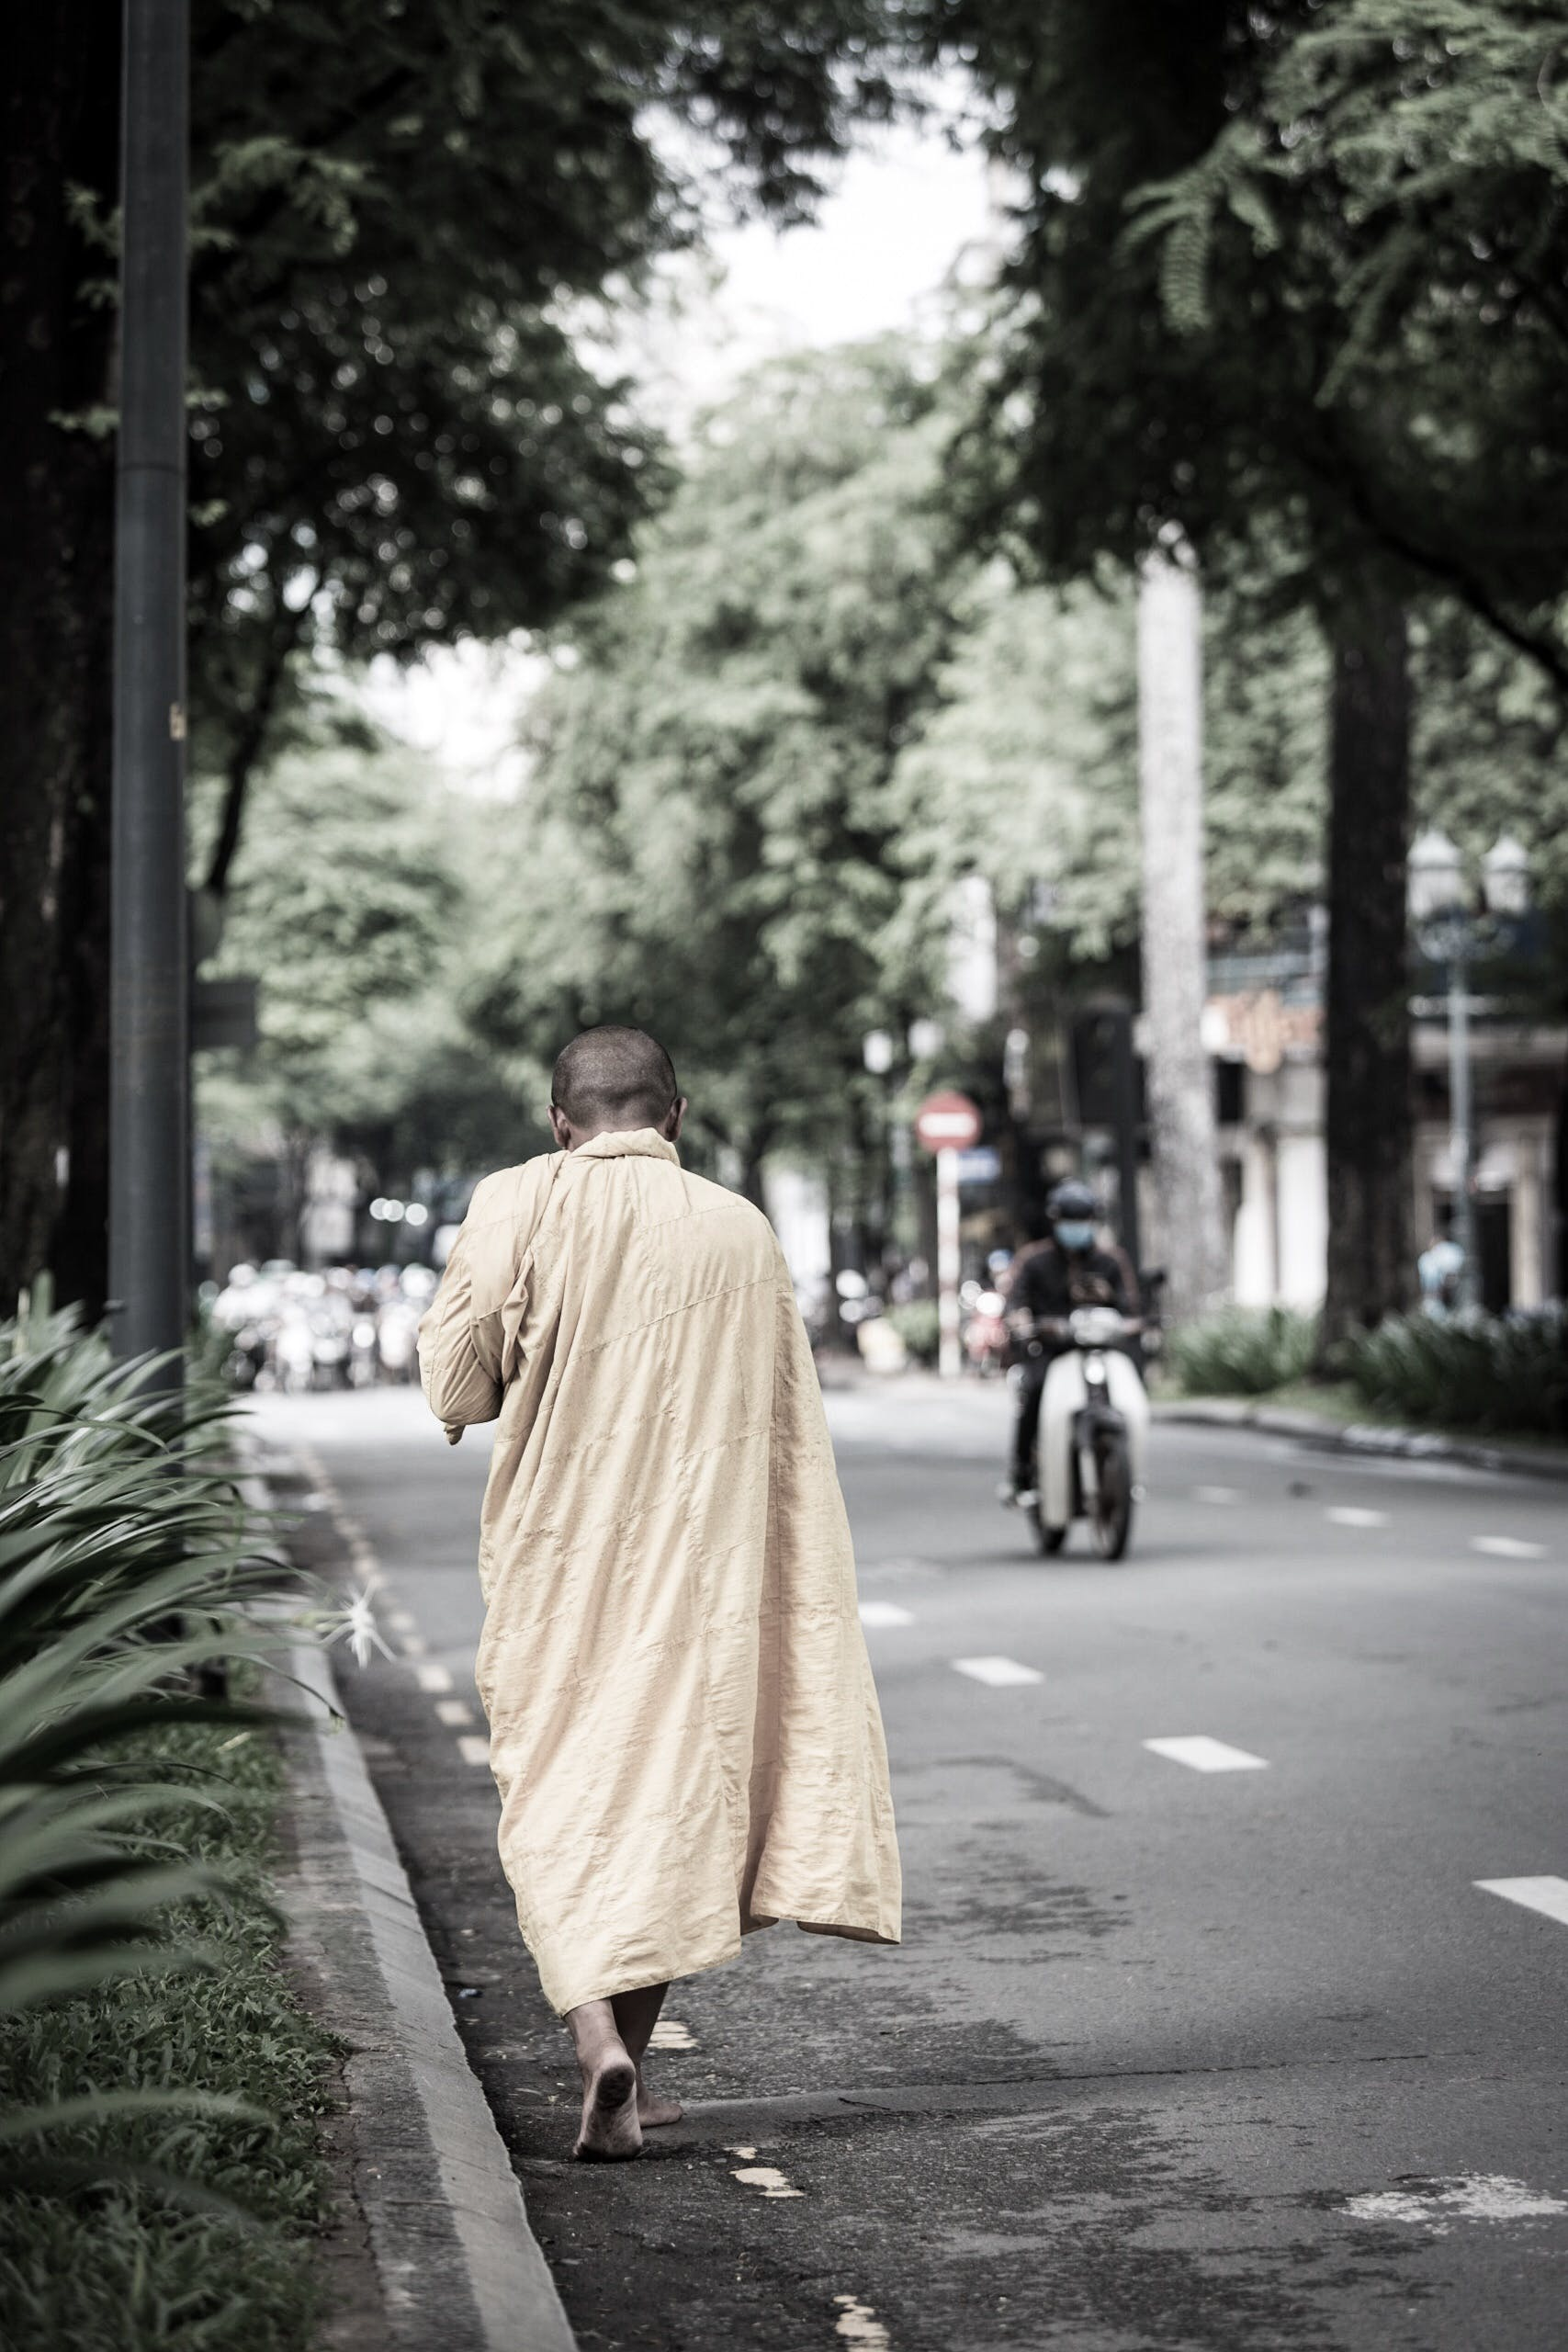 Monk Walking on Road Beside Fern Plants